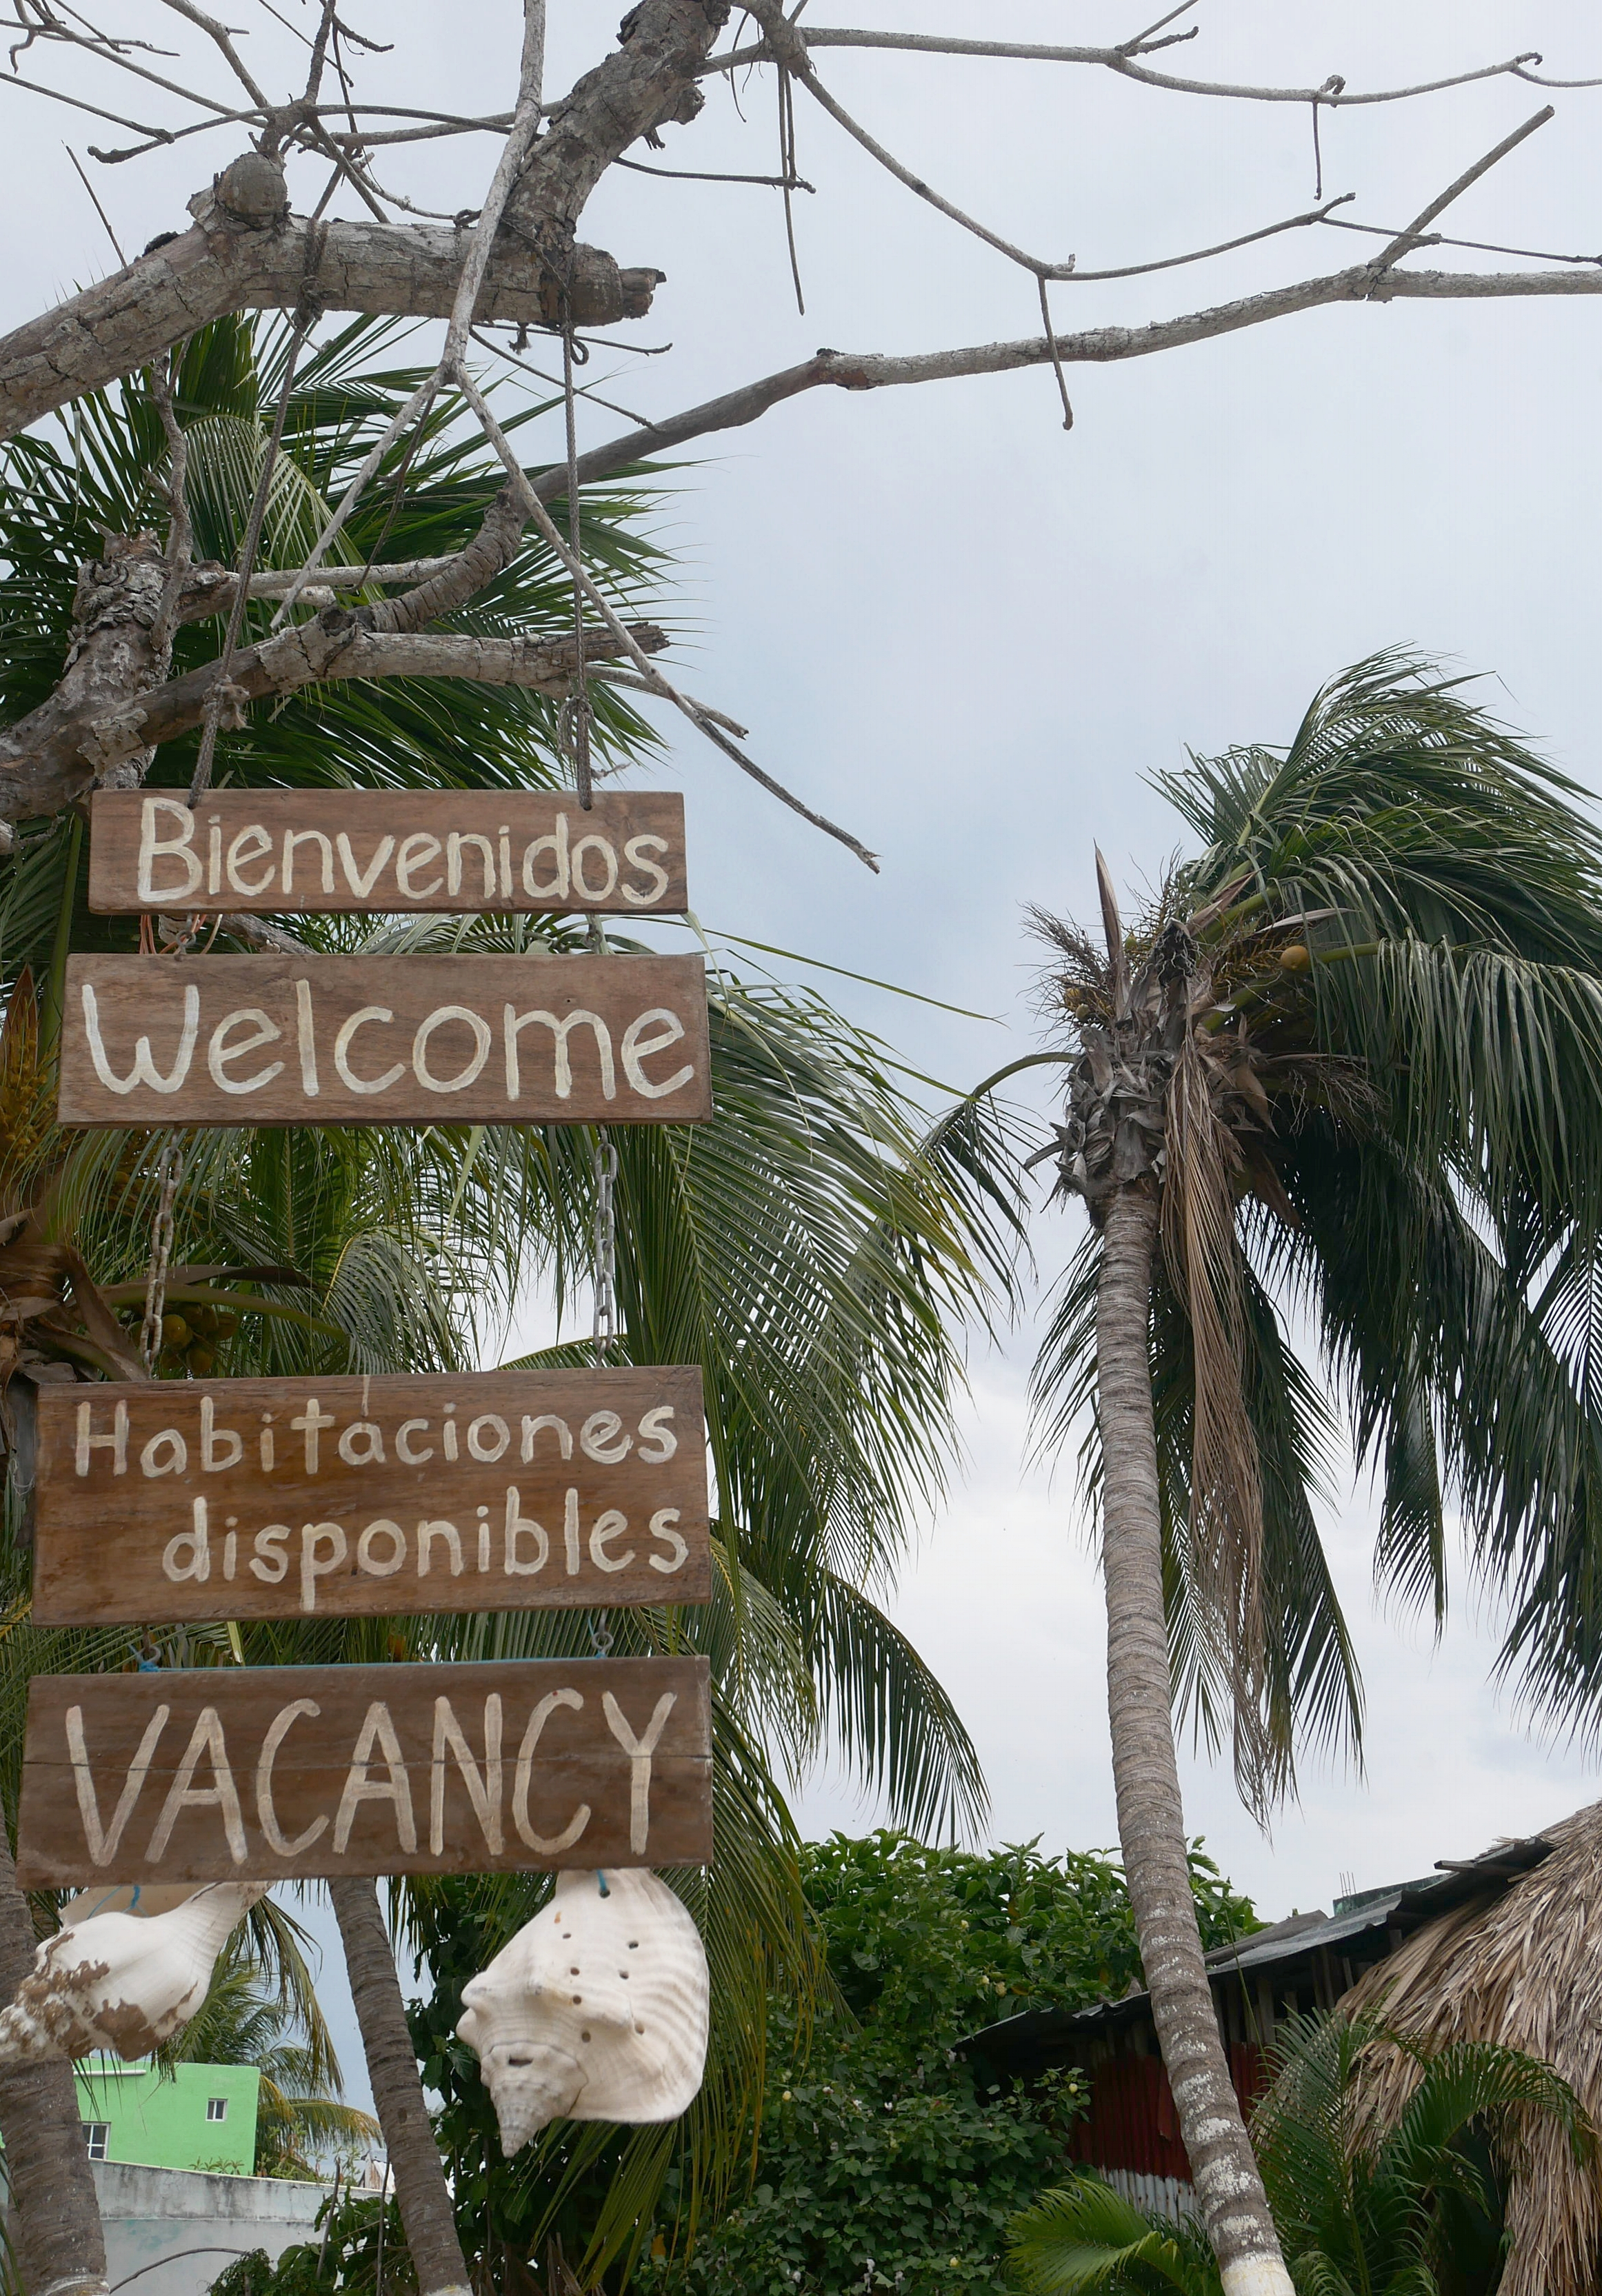 My Holbox home-away-from-home, Pousada Ingrid